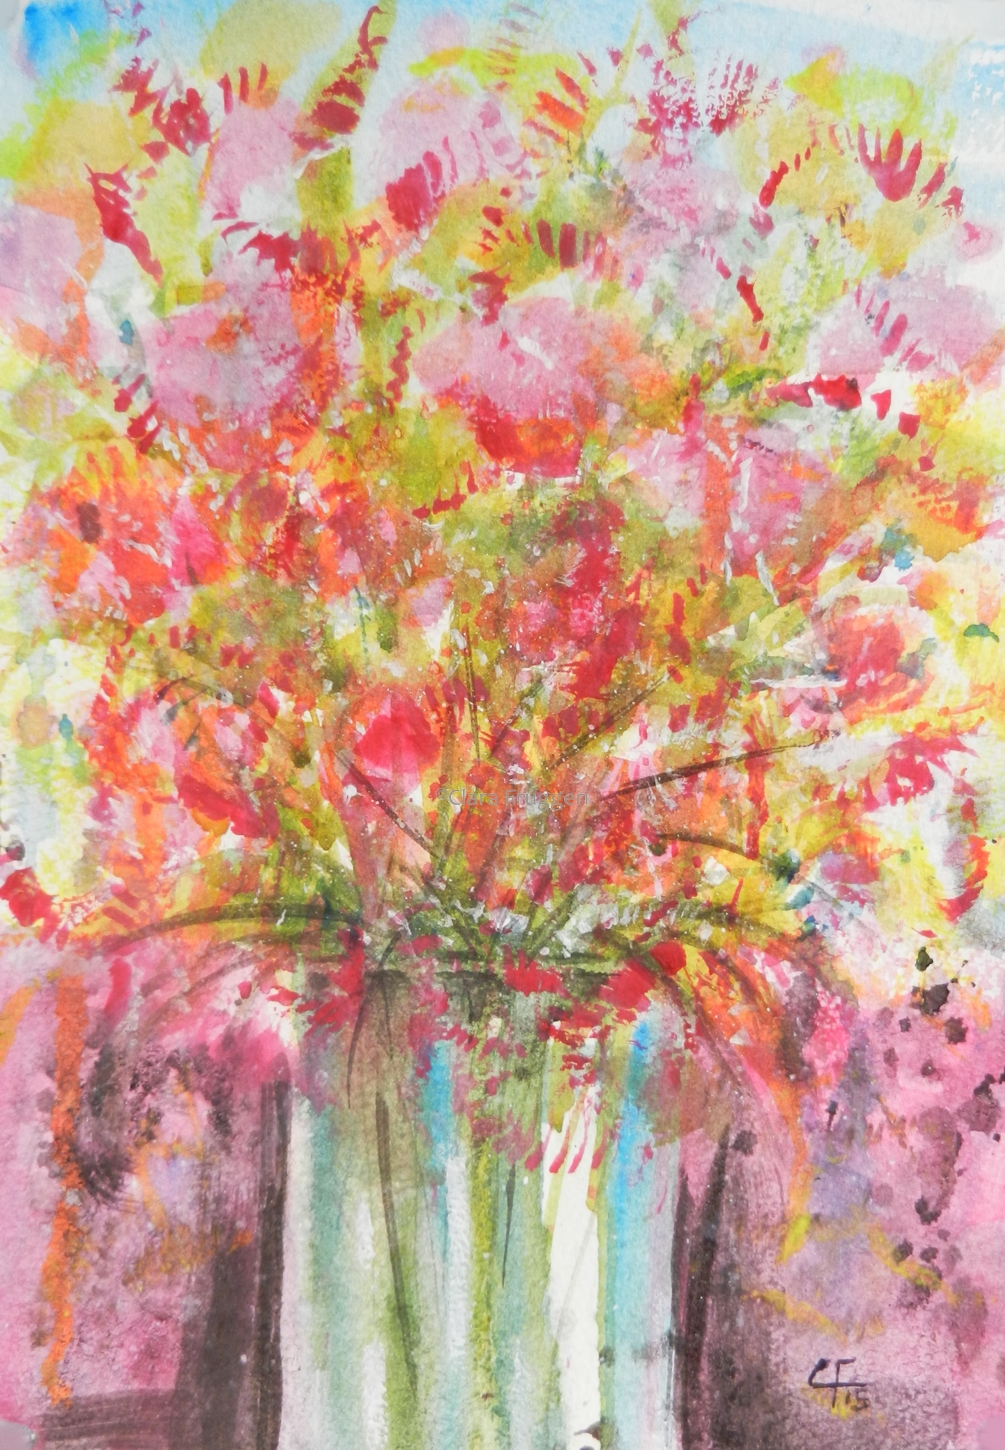 Flower port, Watercolor, Painting, Nature, Flowers, Colors, Abstract Art, Clara Fruggeri